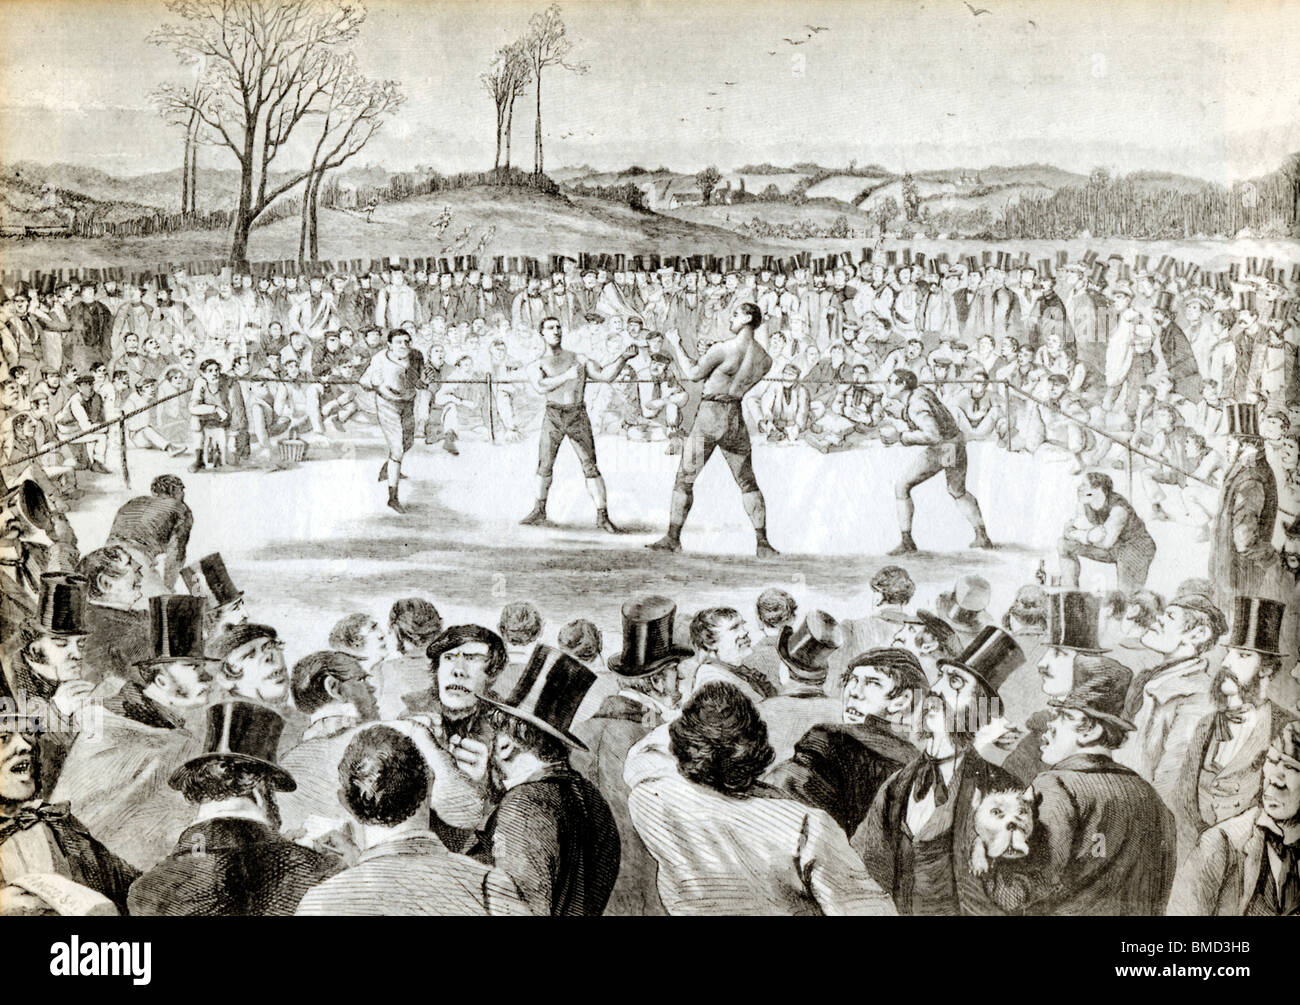 Tom Sayers v John Heenan, England v USA, at Farnborough 17 April 1860 for the World Heavyweight title, it was a - Stock Image